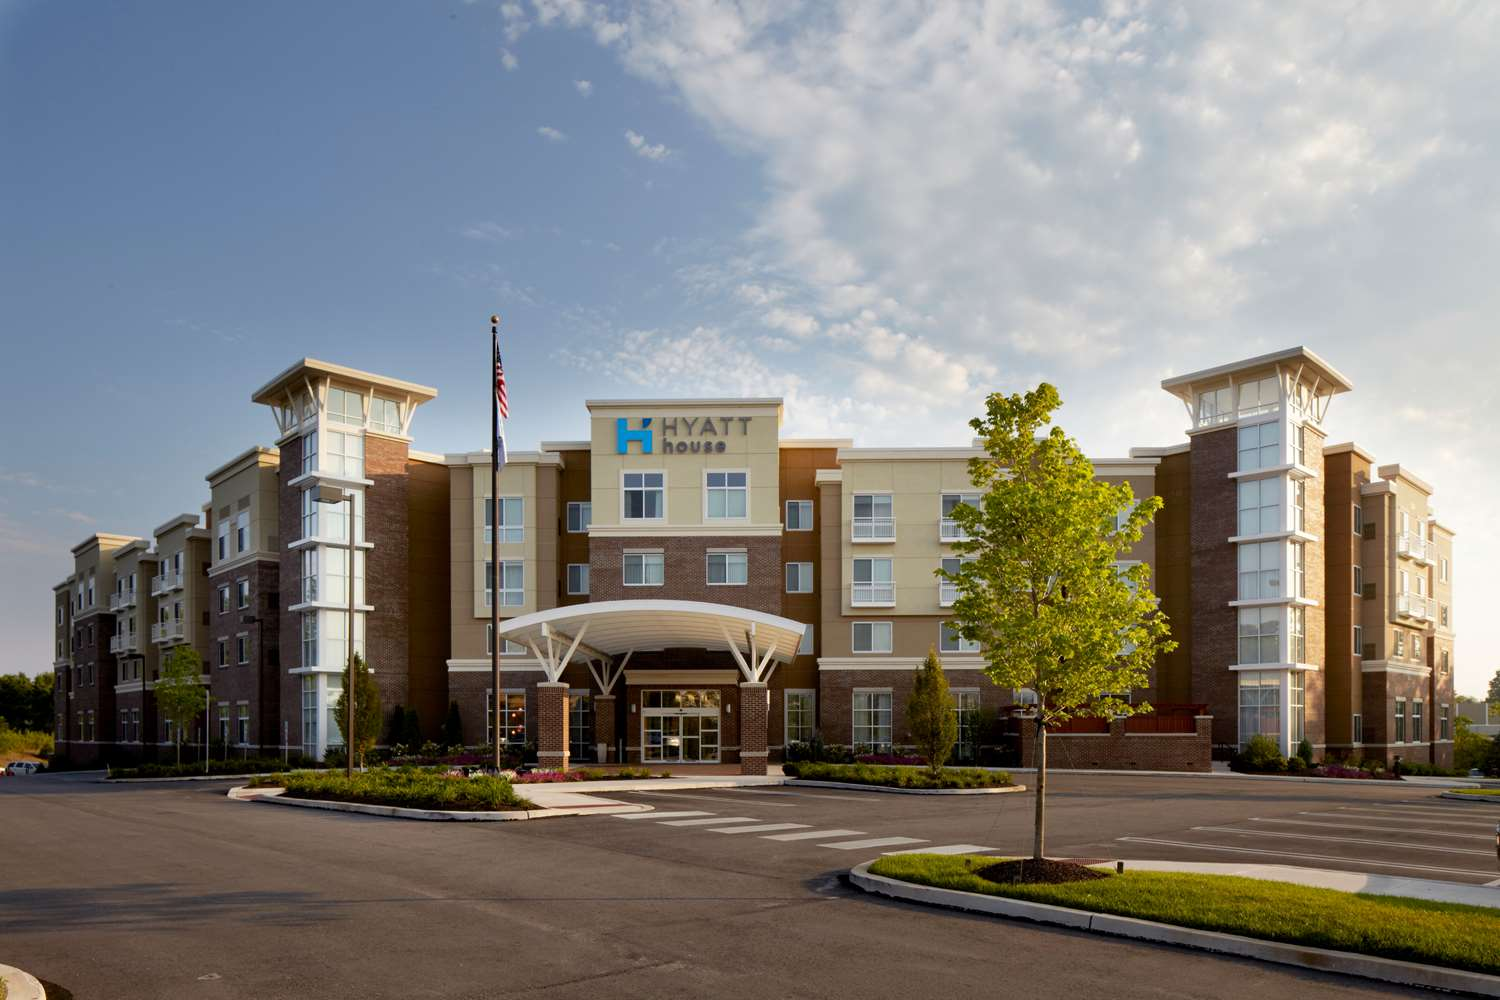 Exterior view - Hyatt House Hotel King of Prussia